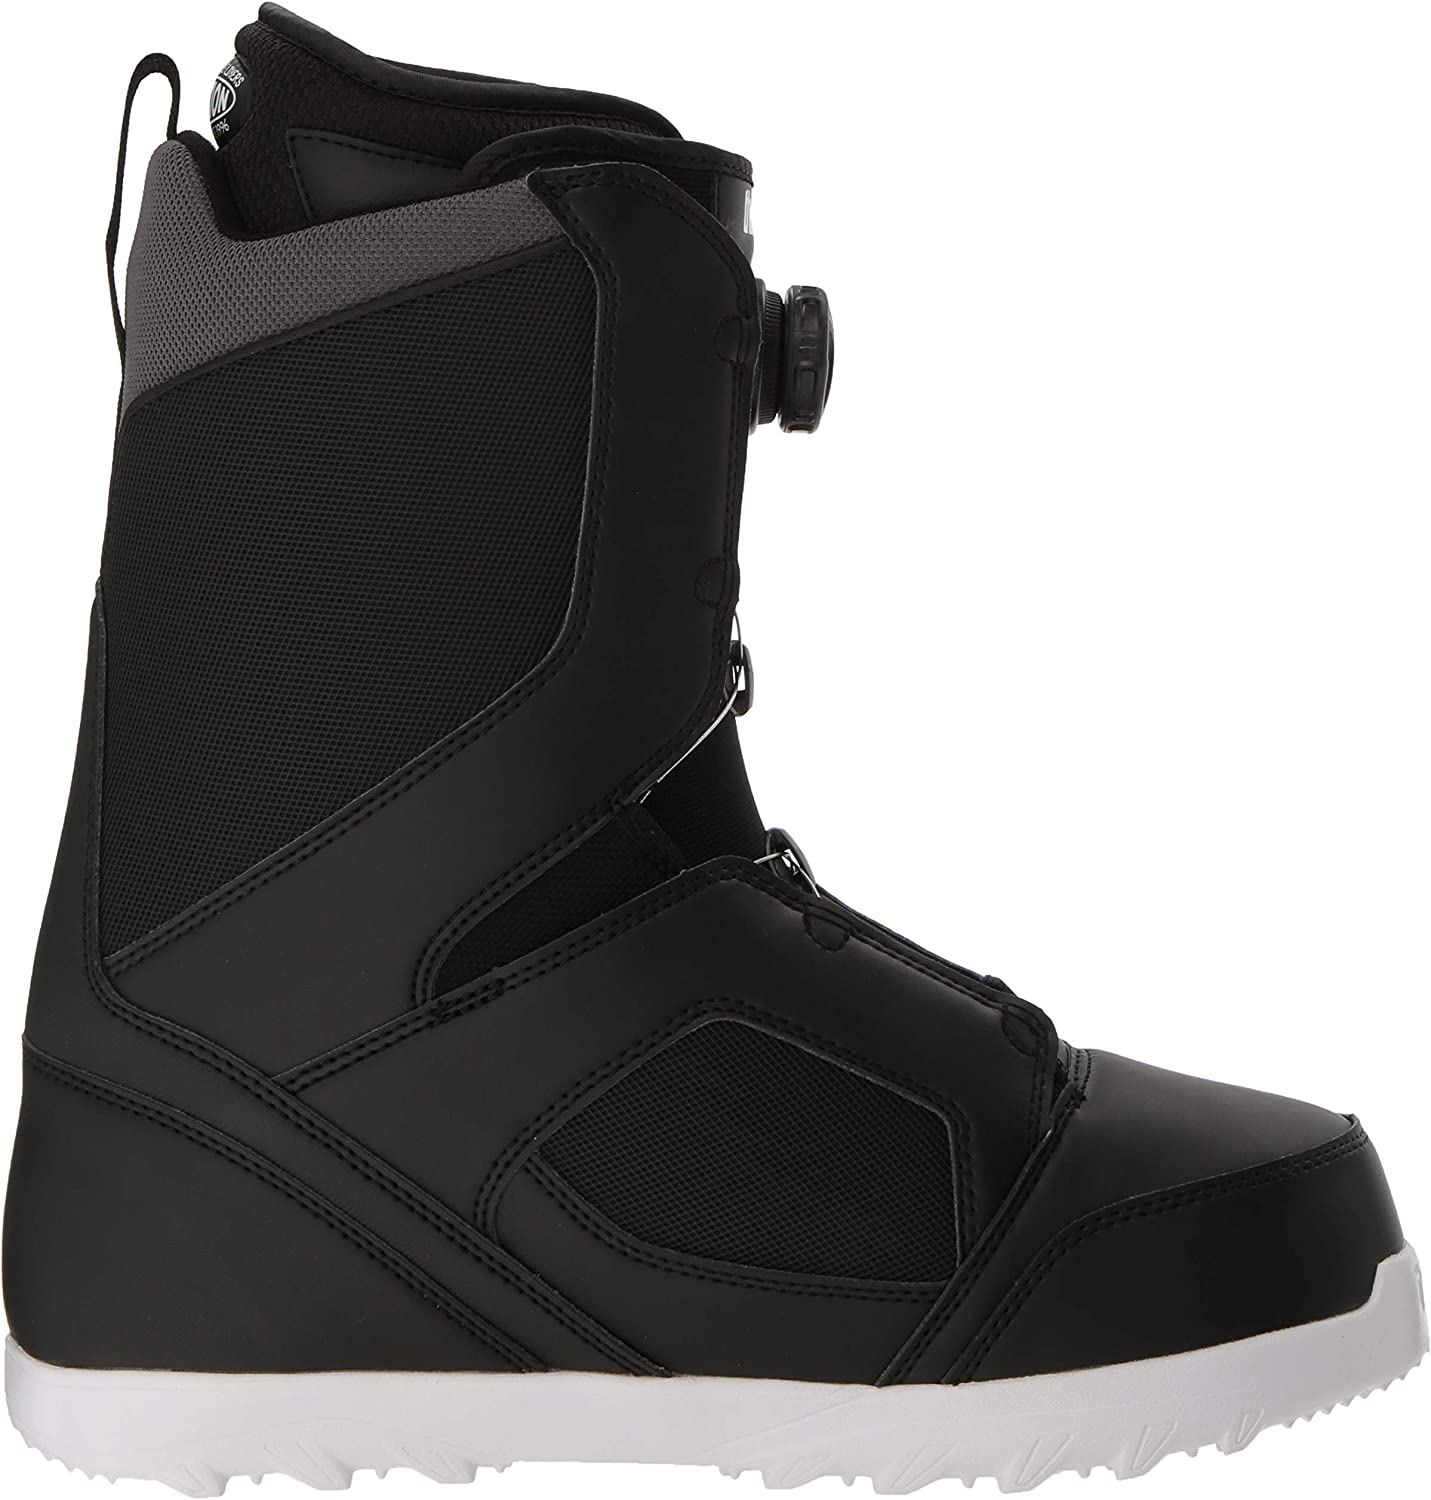 ThirtyTwo 32 STW BOA 18 Snowboard Boots Mens